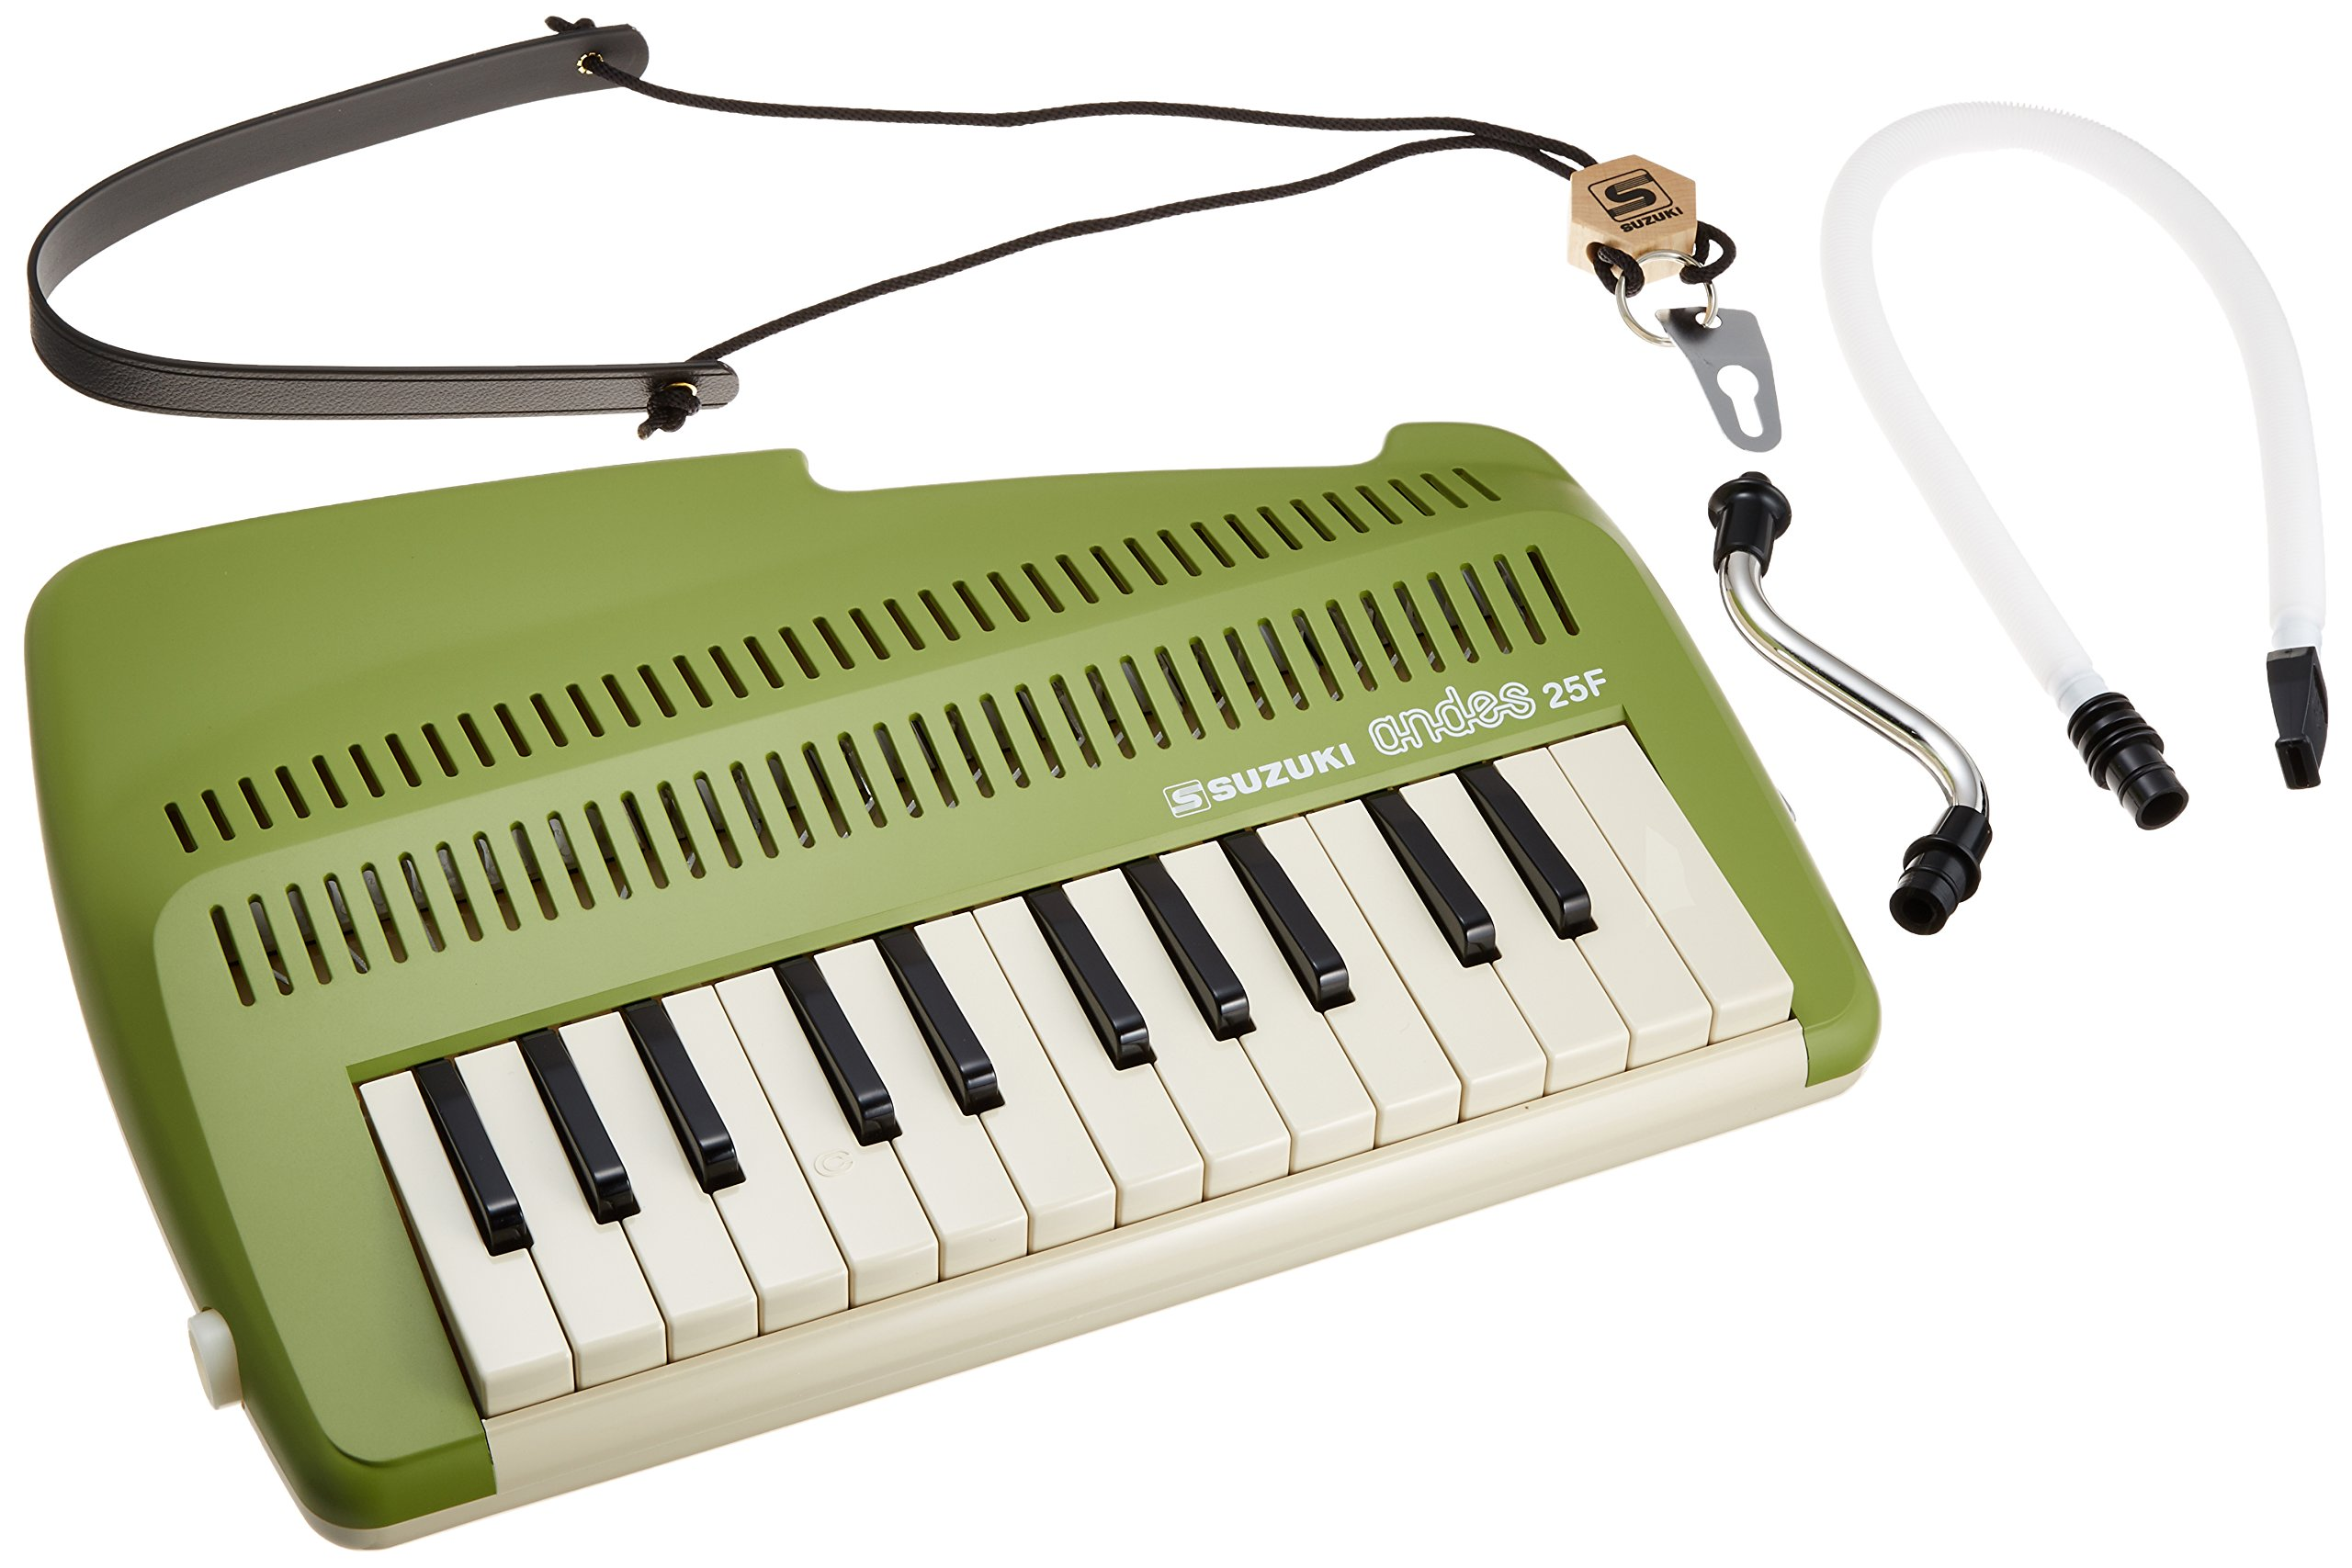 Suzuki A-25F 25-Key Andes Recorder-Keyboard with Mouthpiece and Strap by Suzuki